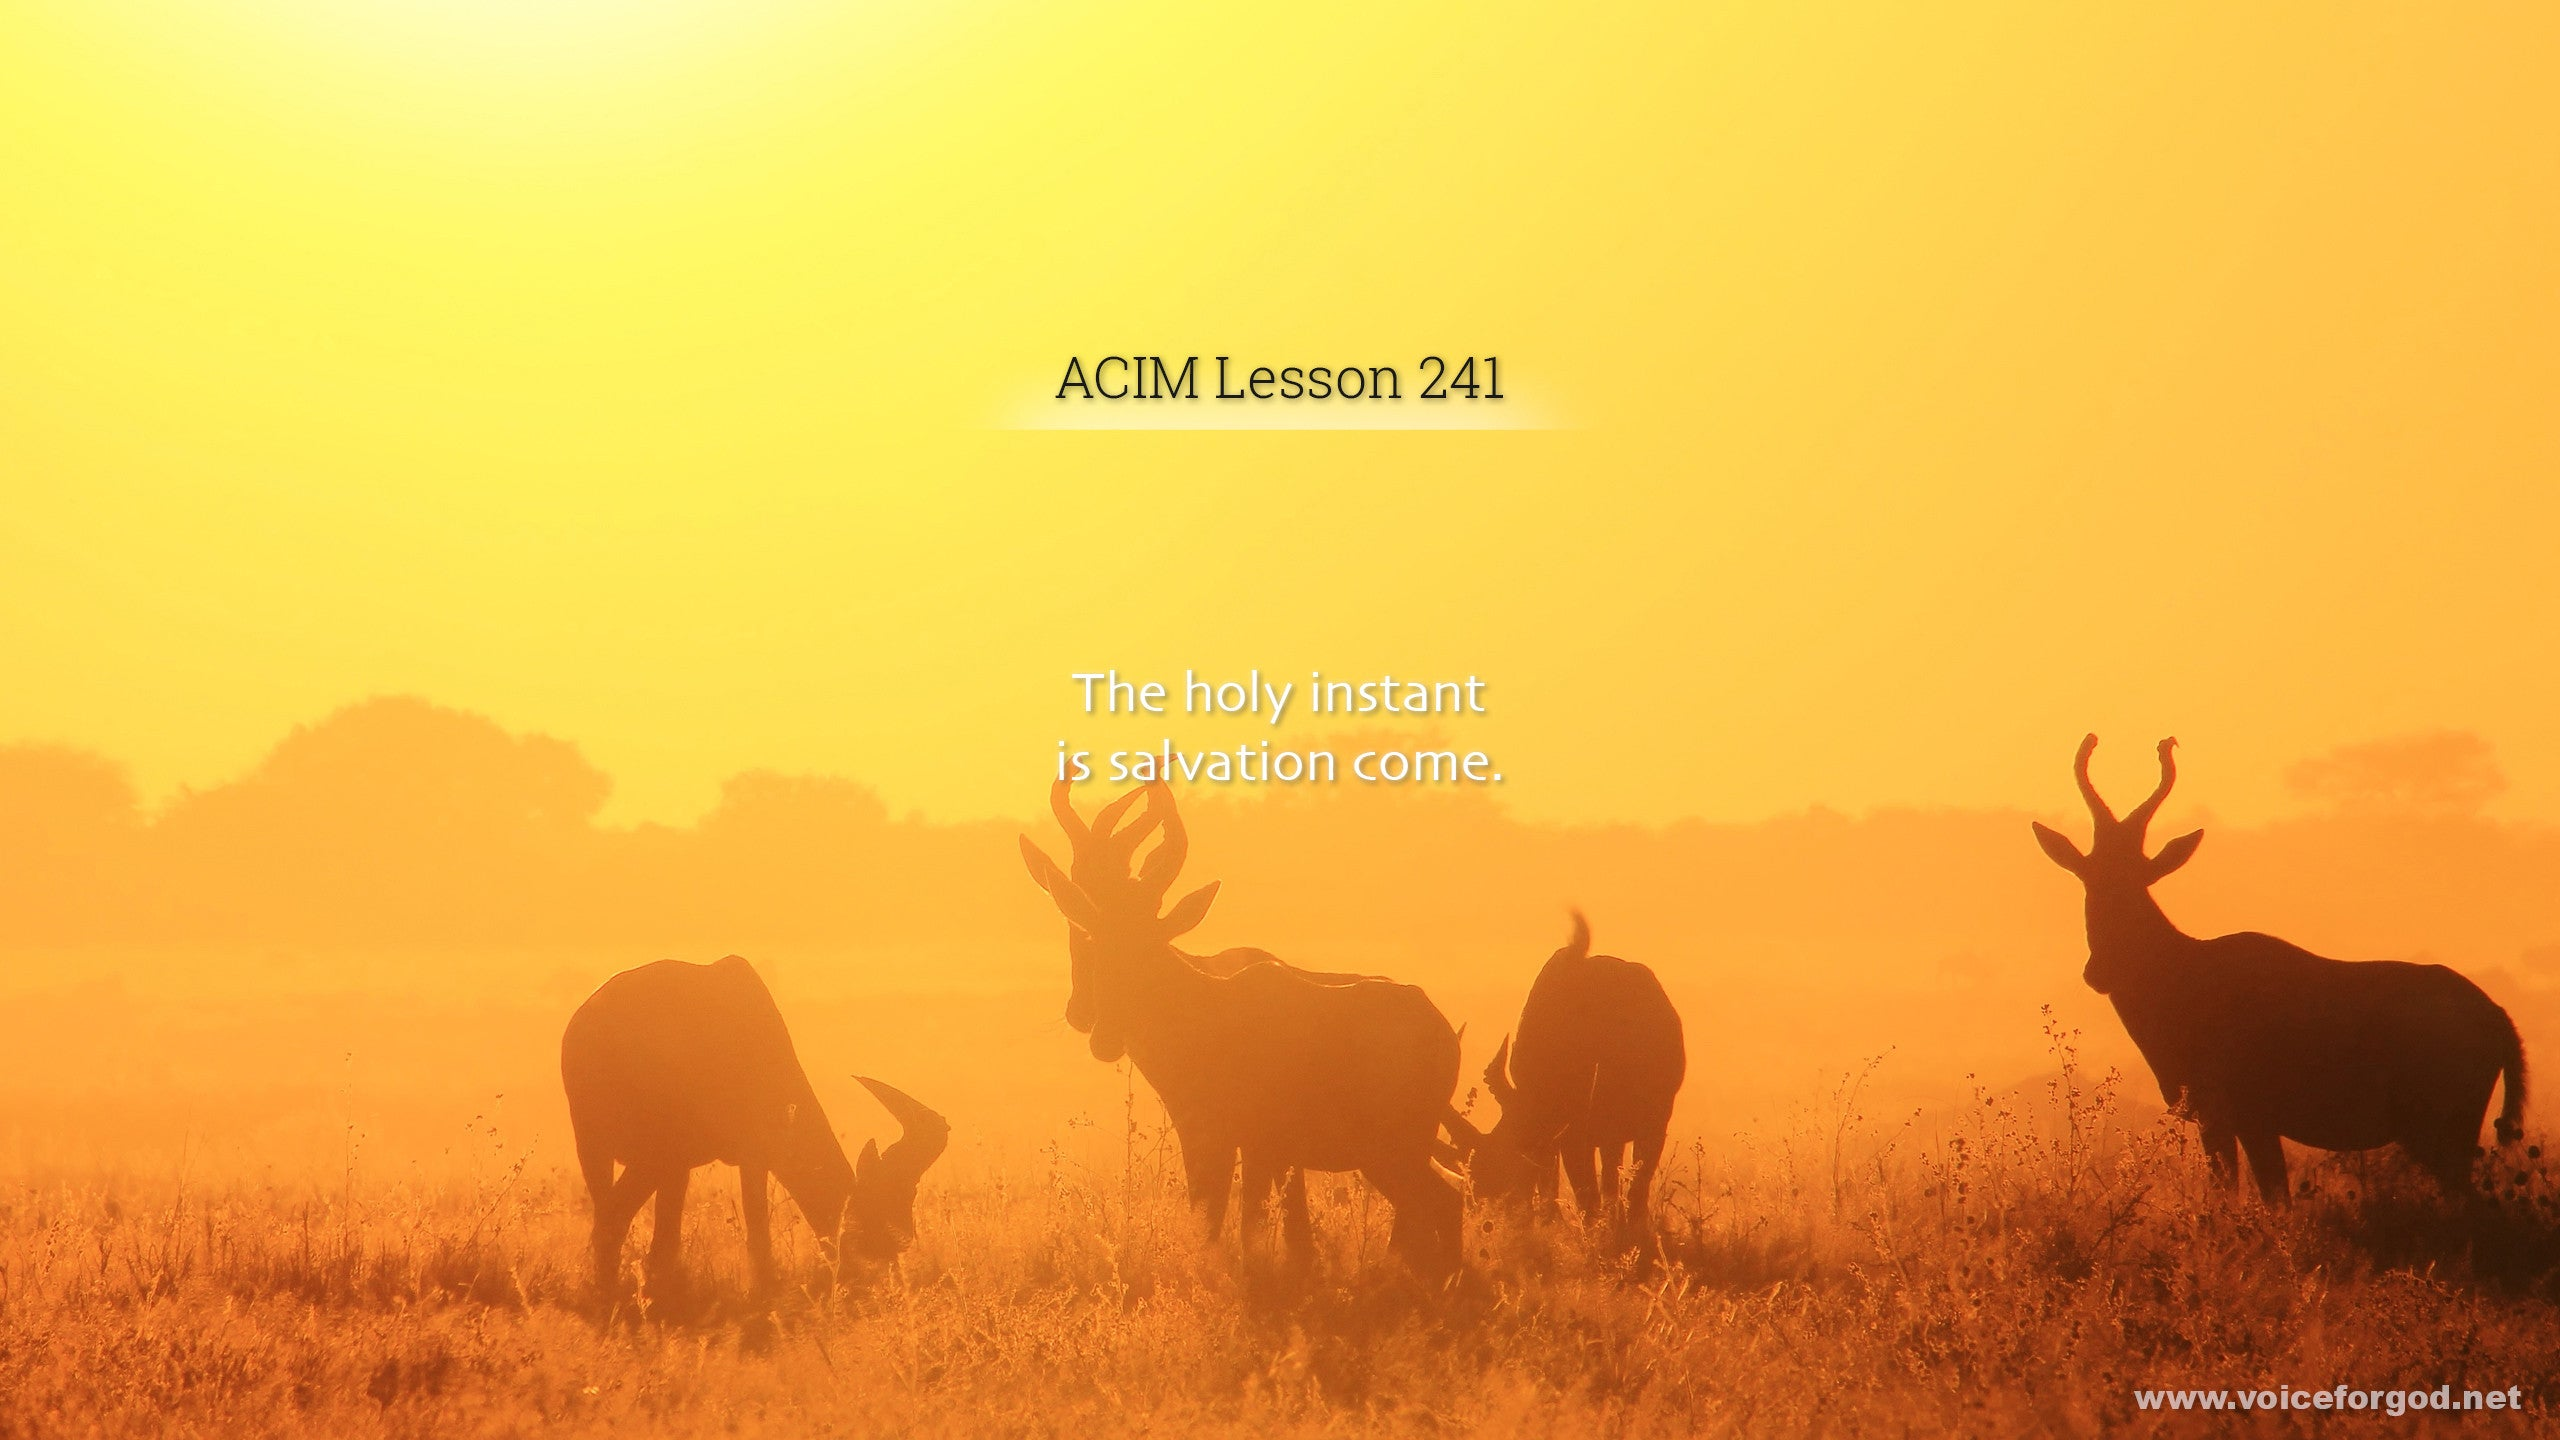 ACIM Lesson 241 - A Course in Miracles Workbook Lesson 241